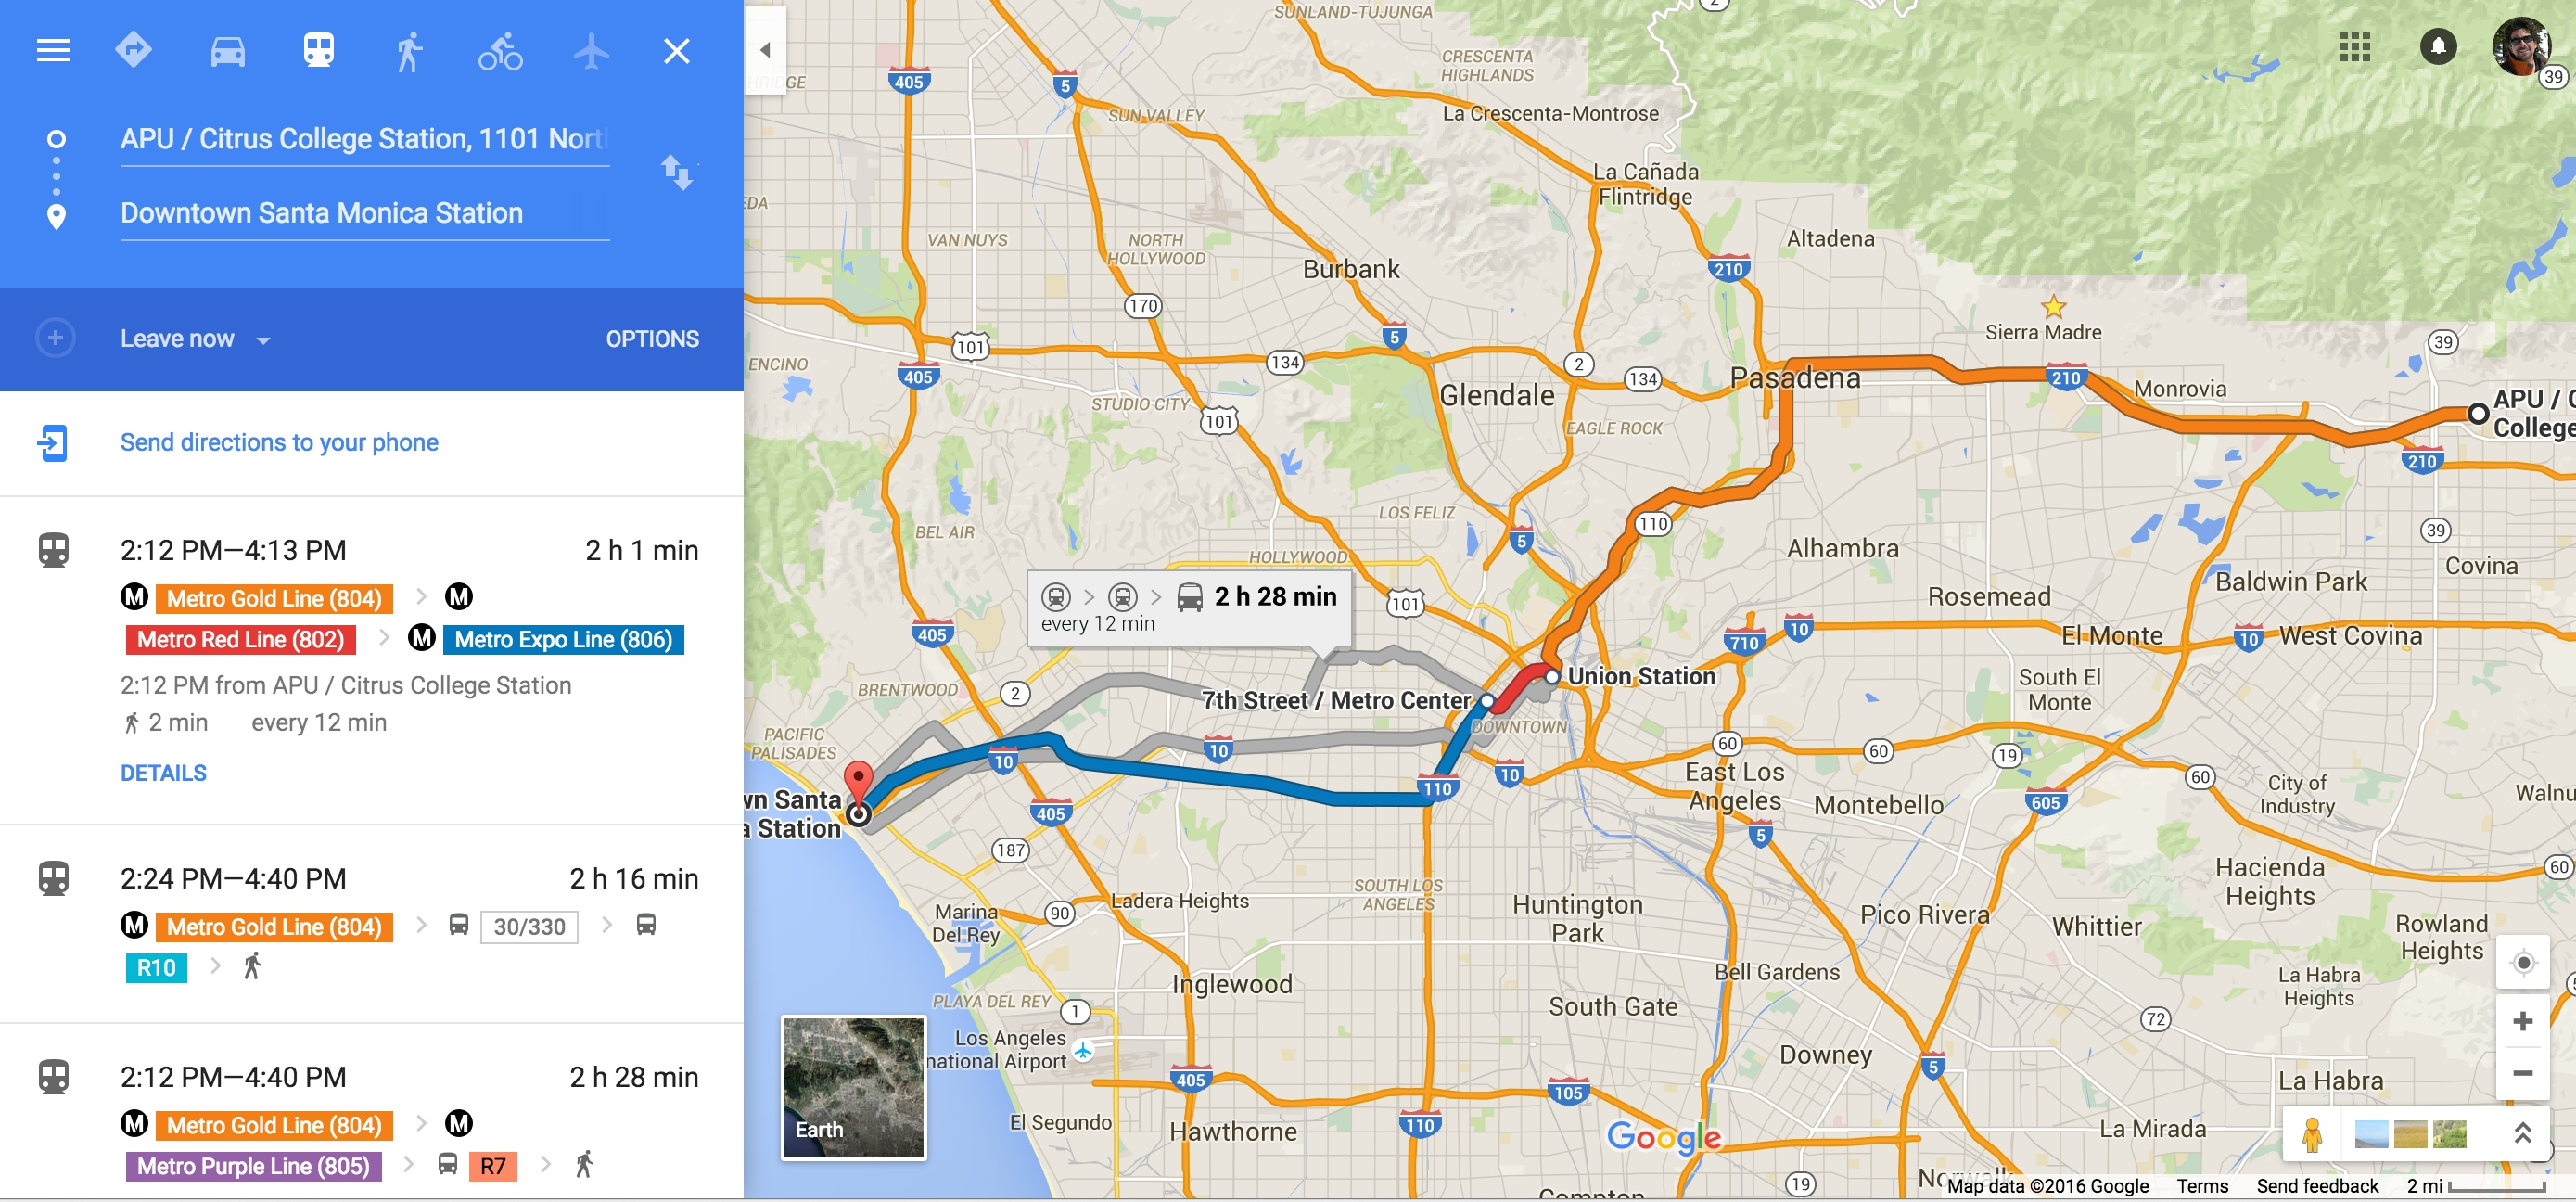 The Azusa-to-SaMo trip as seen on Google Maps.